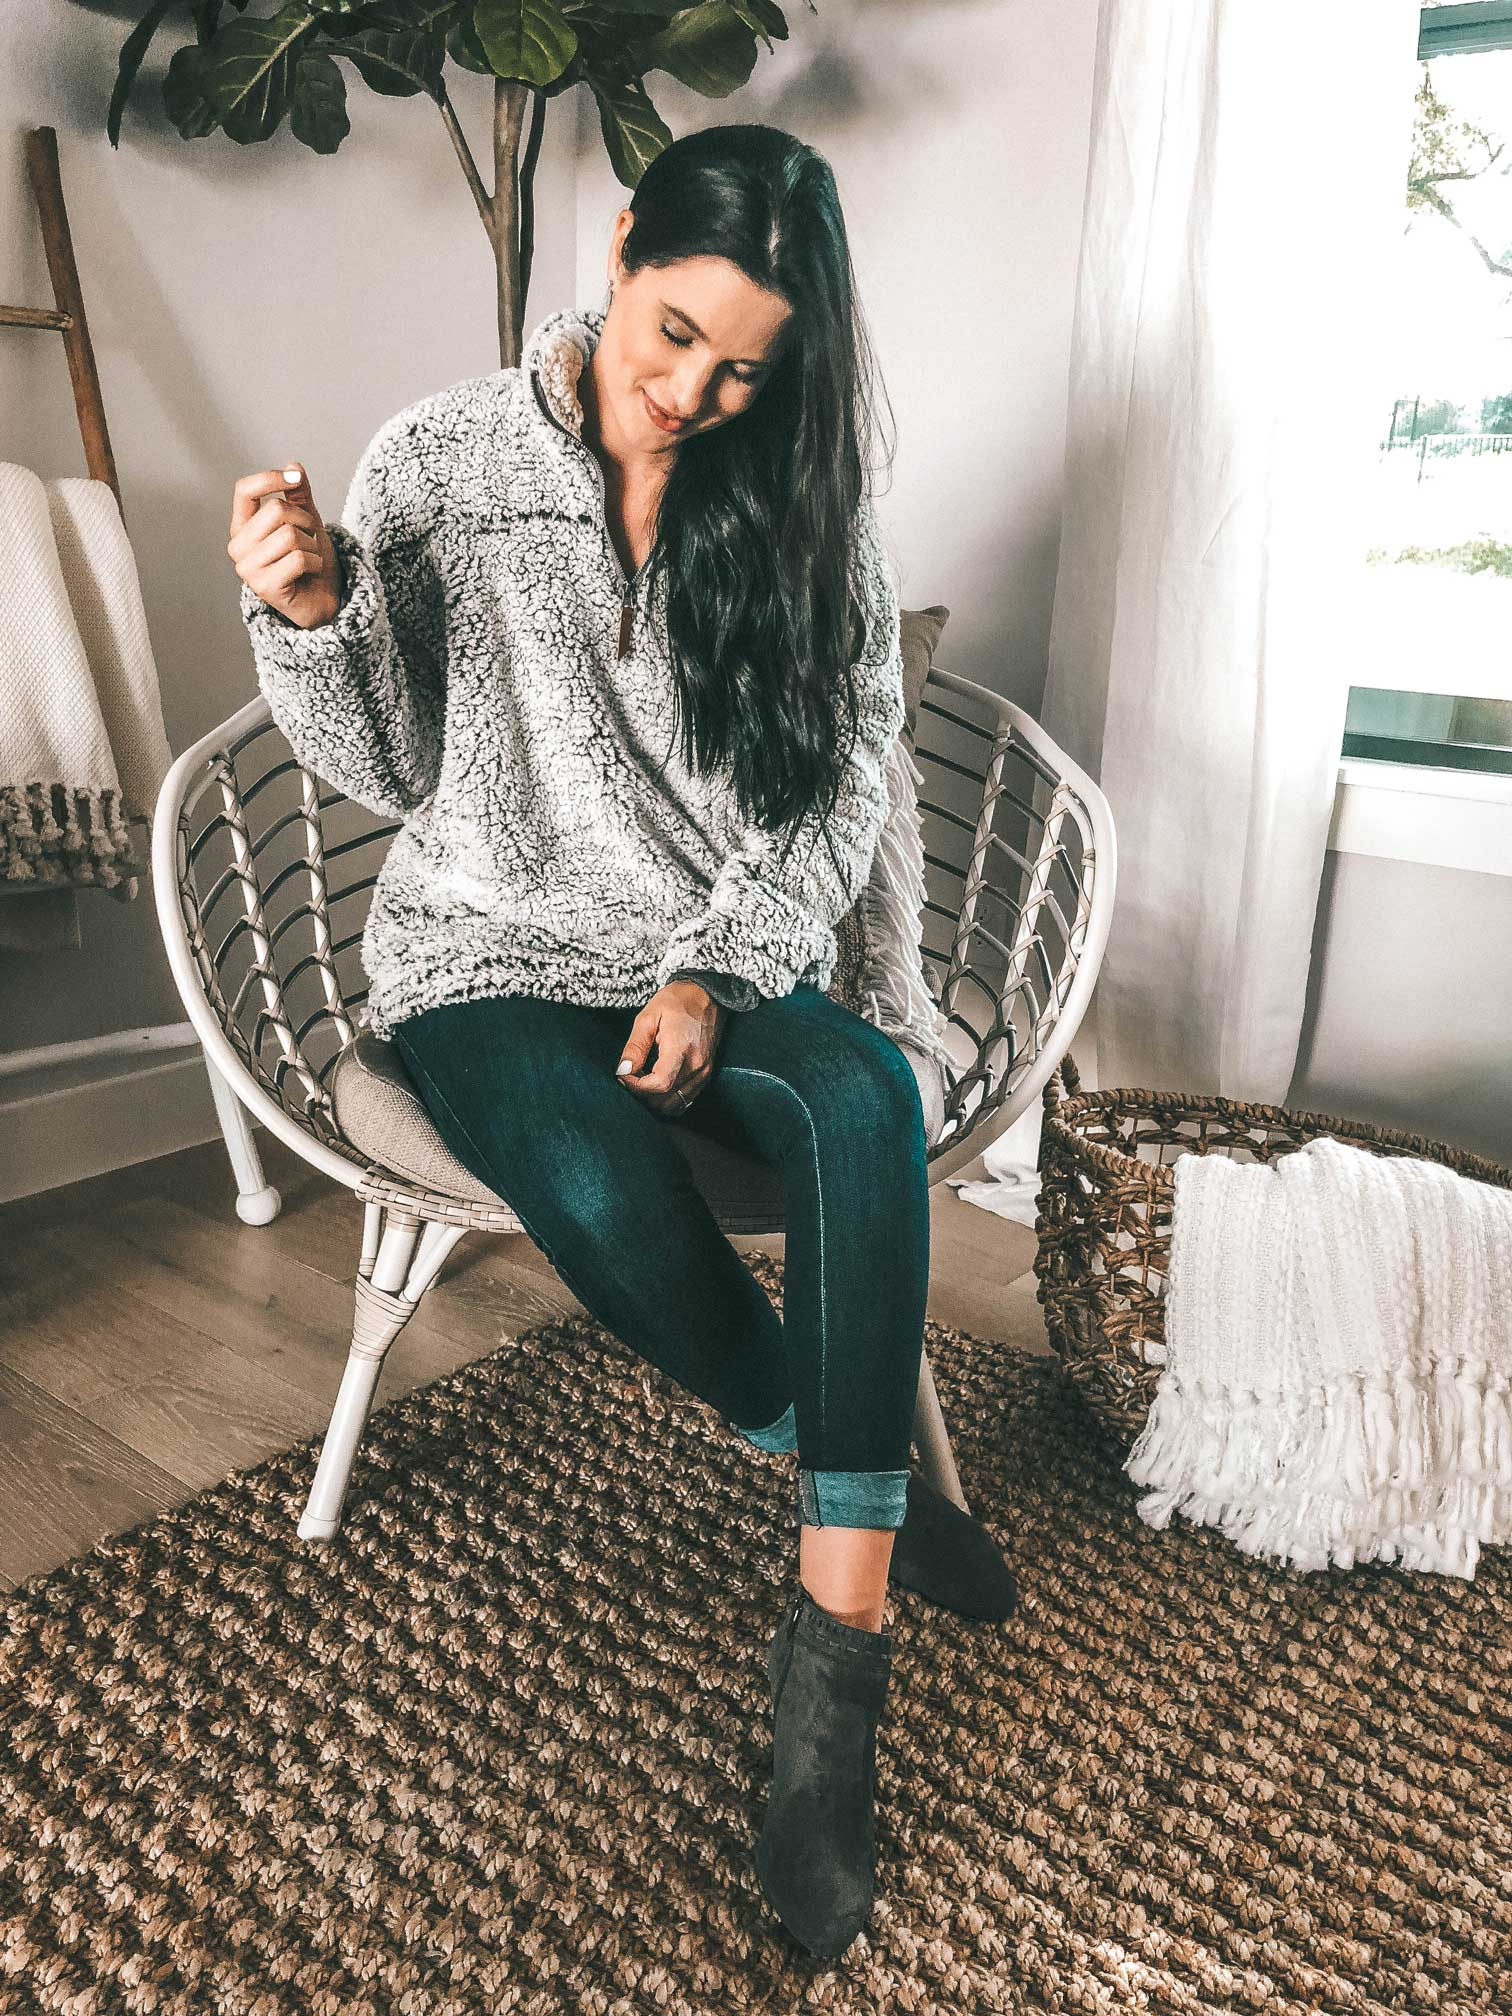 DTKAustin shares her 7 must have items from the 2018 Nordstrom Anniversary Sale NSALE. - Nordstrom Anniversary Sale Must Haves featured by popular Austin fashion blogger, Dressed to Kill || DTK Austin #nsale #nordstrom #anniversarysale #nordstromsale #fashion #style #fallstyle #winterstyle #womensoutfits #dtkaustin